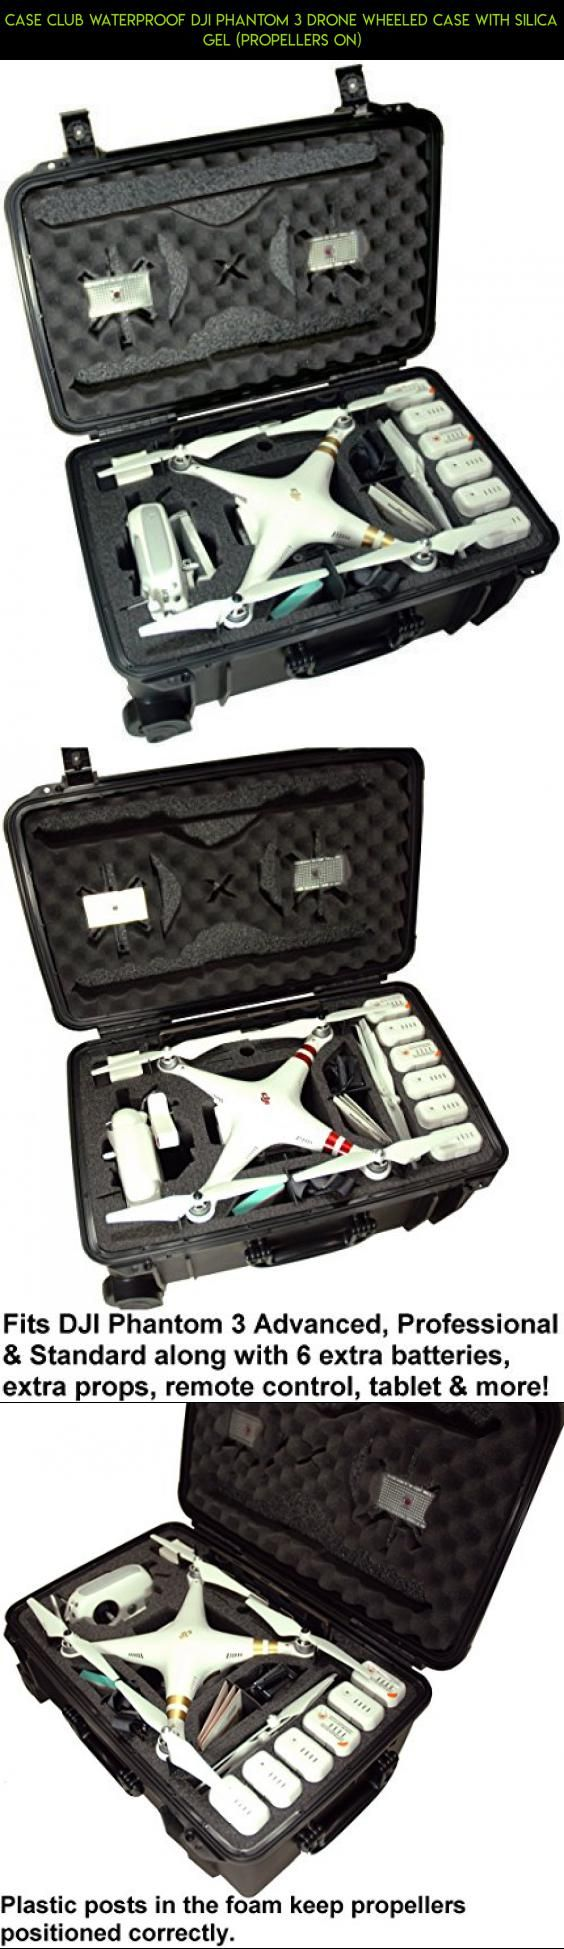 Case Club Waterproof DJI Phantom 3 Drone Wheeled Case with Silica Gel (Propellers On) #fpv #kit #shopping #phantom #gadgets #camera #tech #products #dji #parts #plans #racing #technology #hard #standard #3 #drone #case